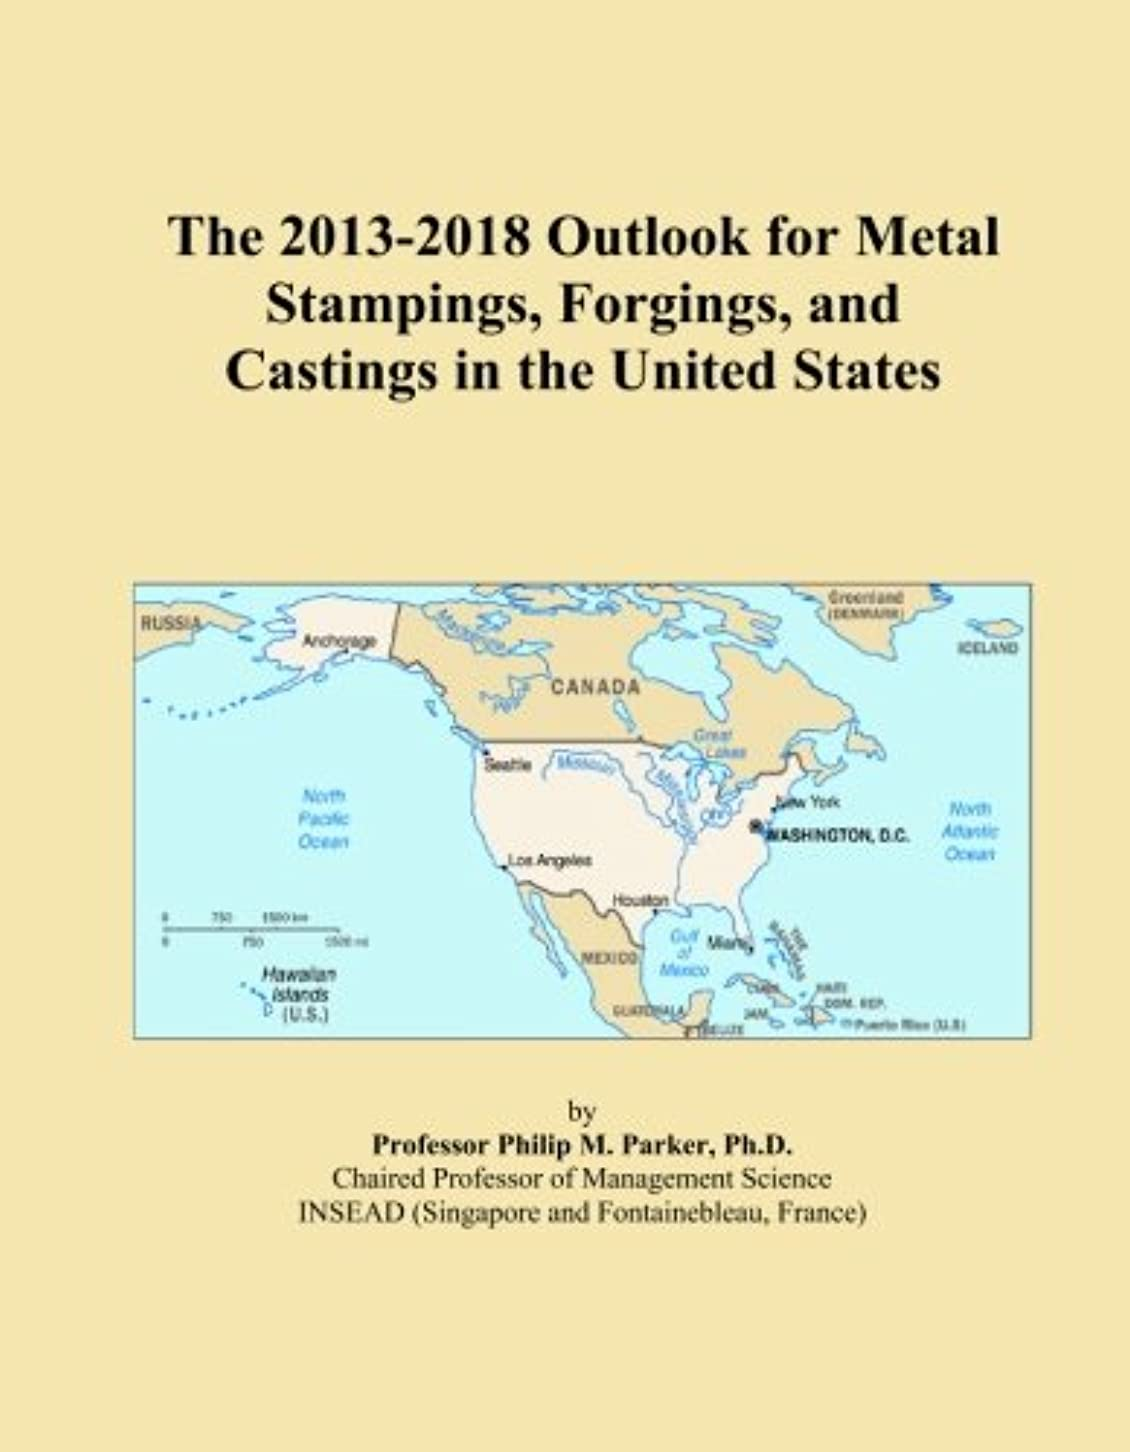 濃度姿を消すサラミThe 2013-2018 Outlook for Metal Stampings, Forgings, and Castings in the United States